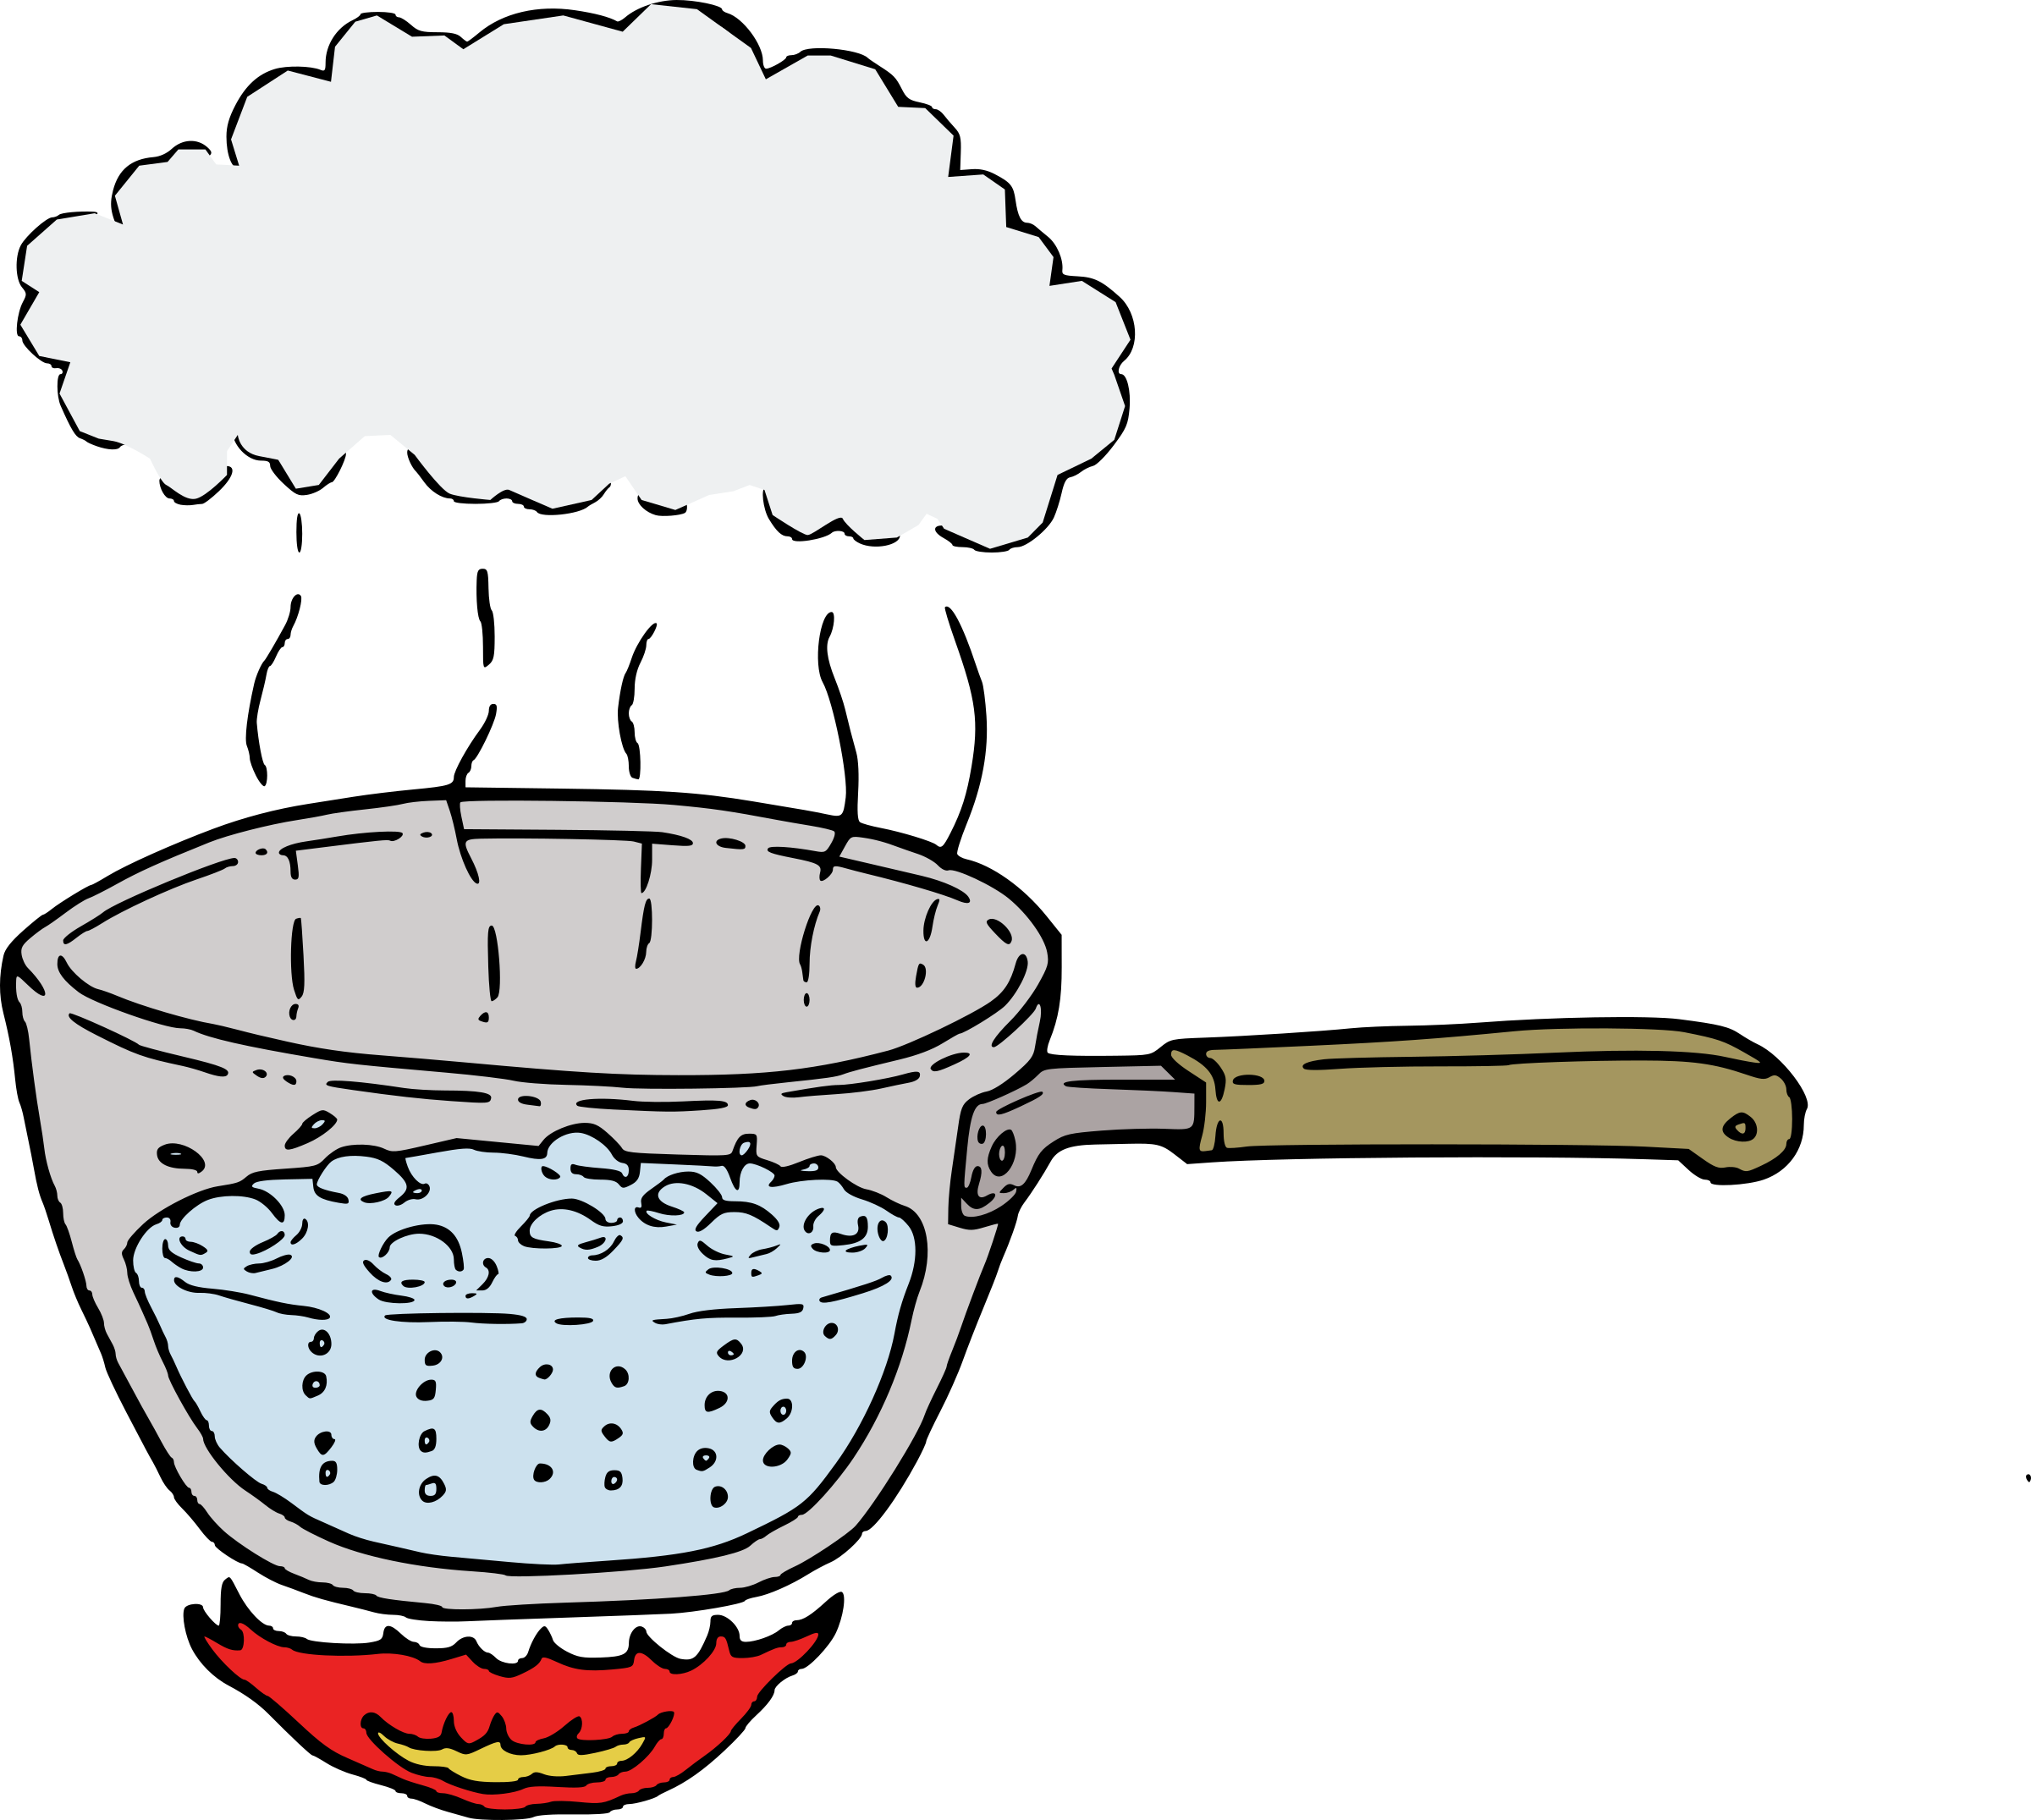 Boiling drawing at getdrawings. Clipart money water